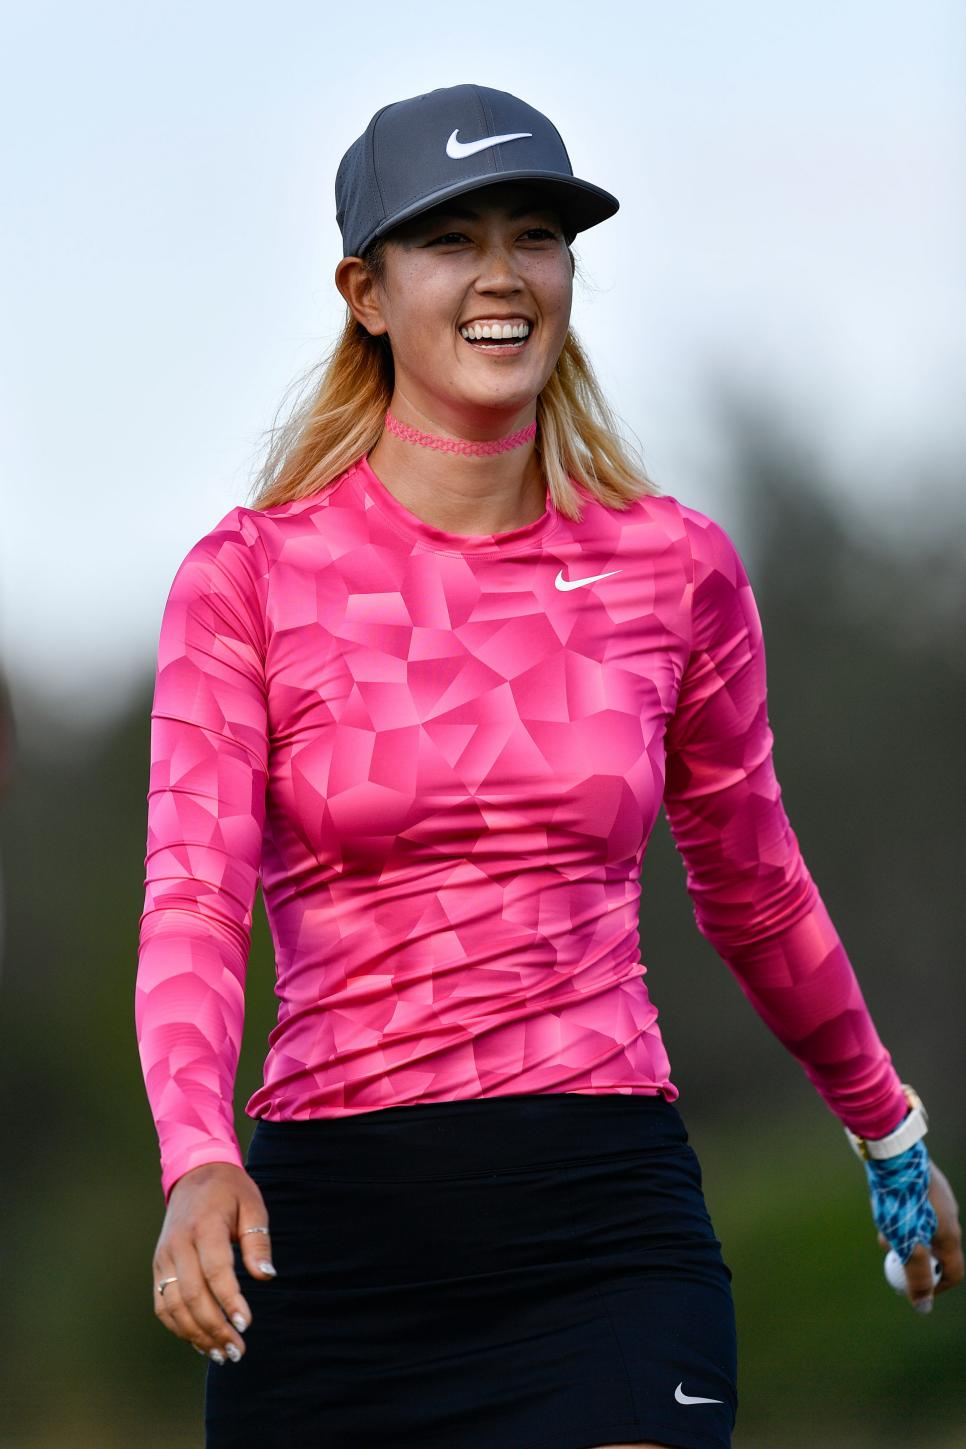 michelle-wie-cme-group-tour-championship-2017-saturday-smile.jpg